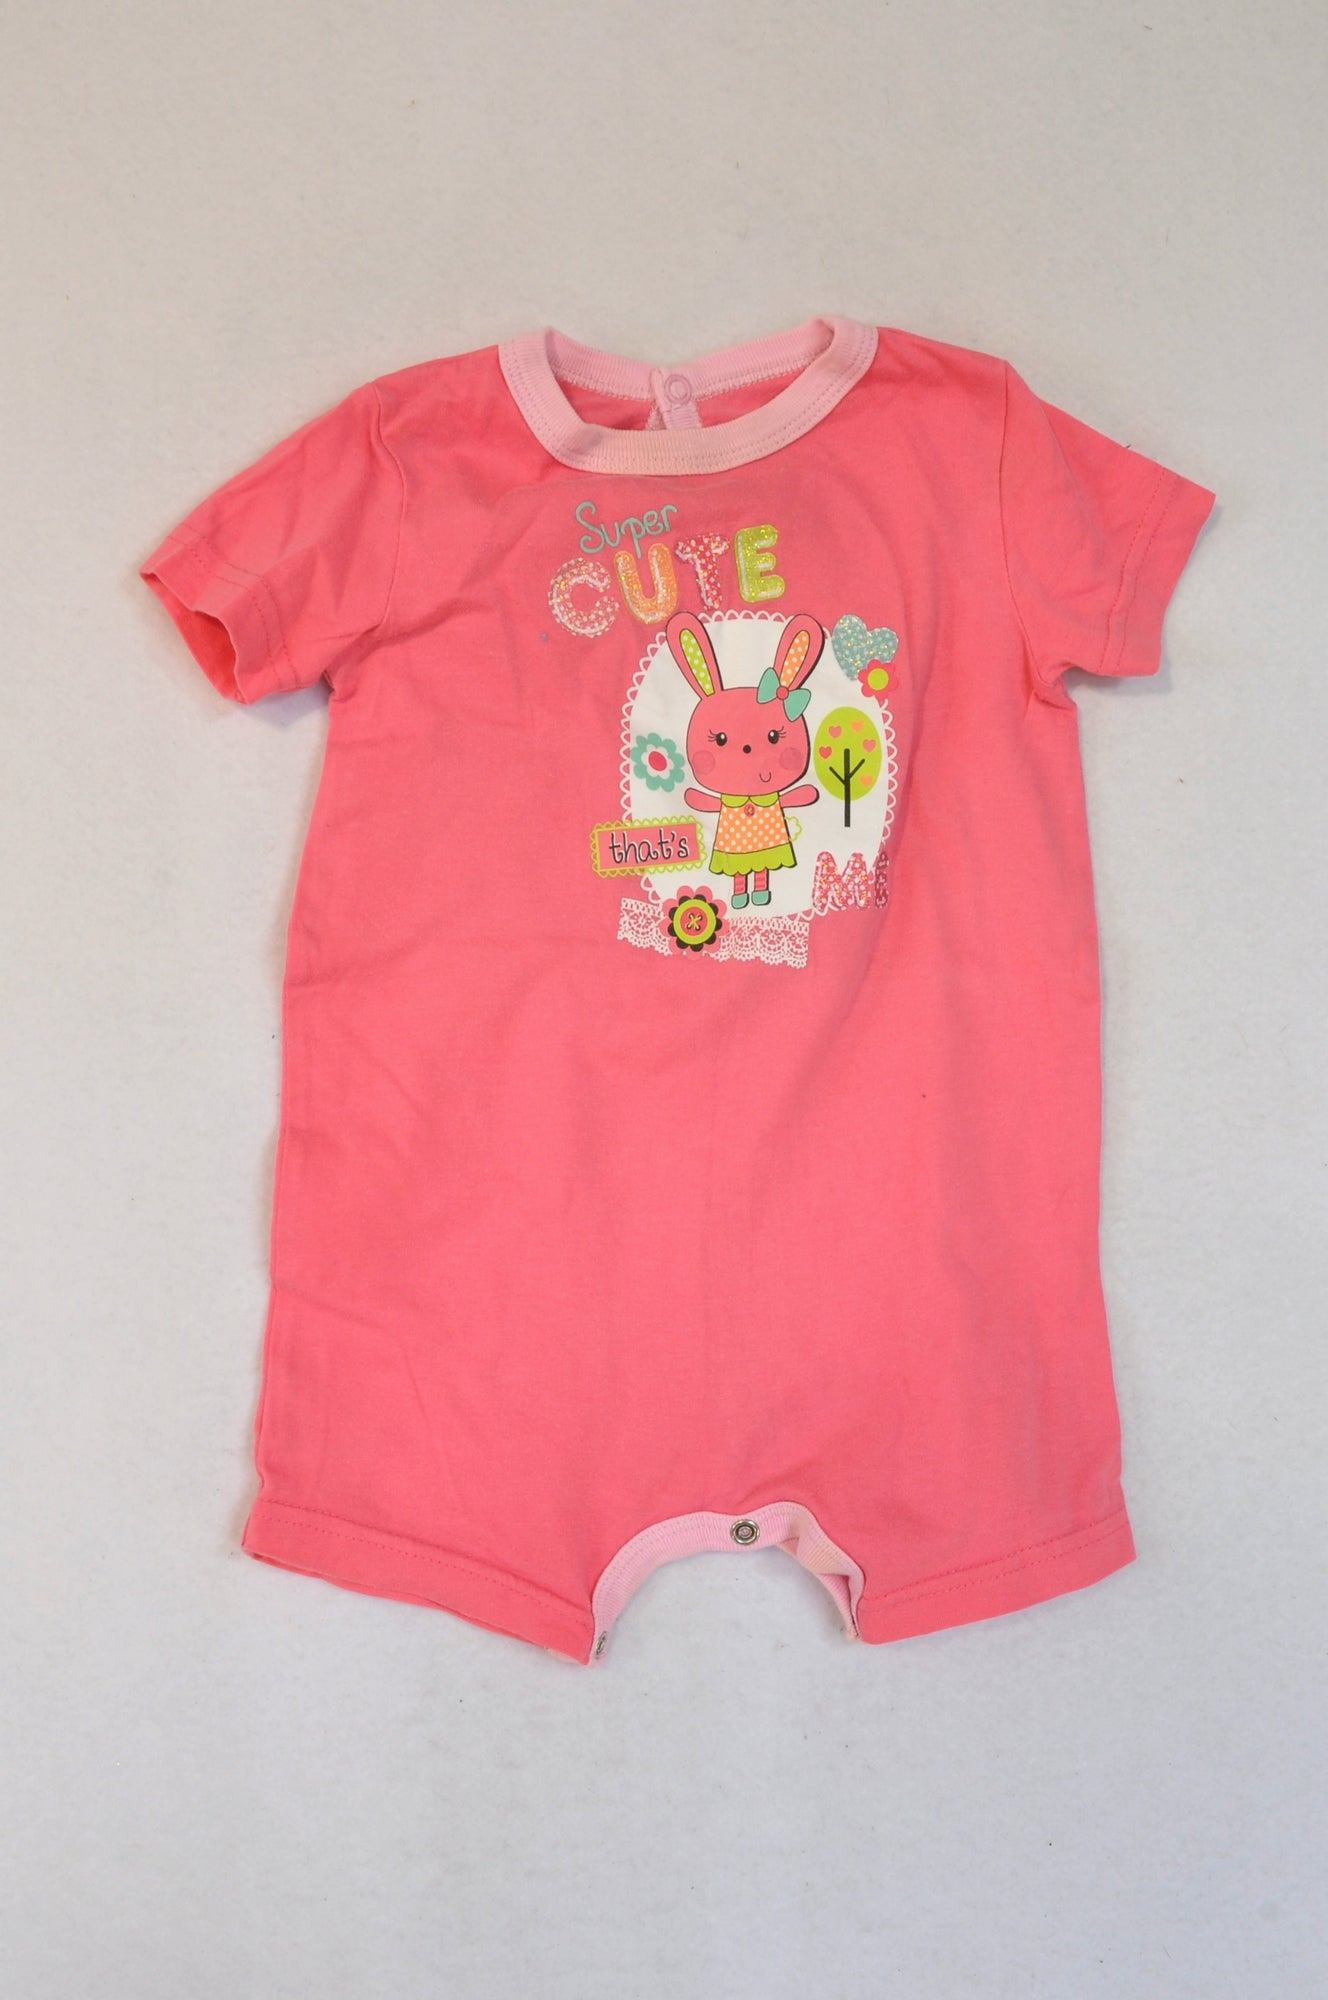 Woolworths Pink Cute That's Me Bunny Romper Girls 6-12 months